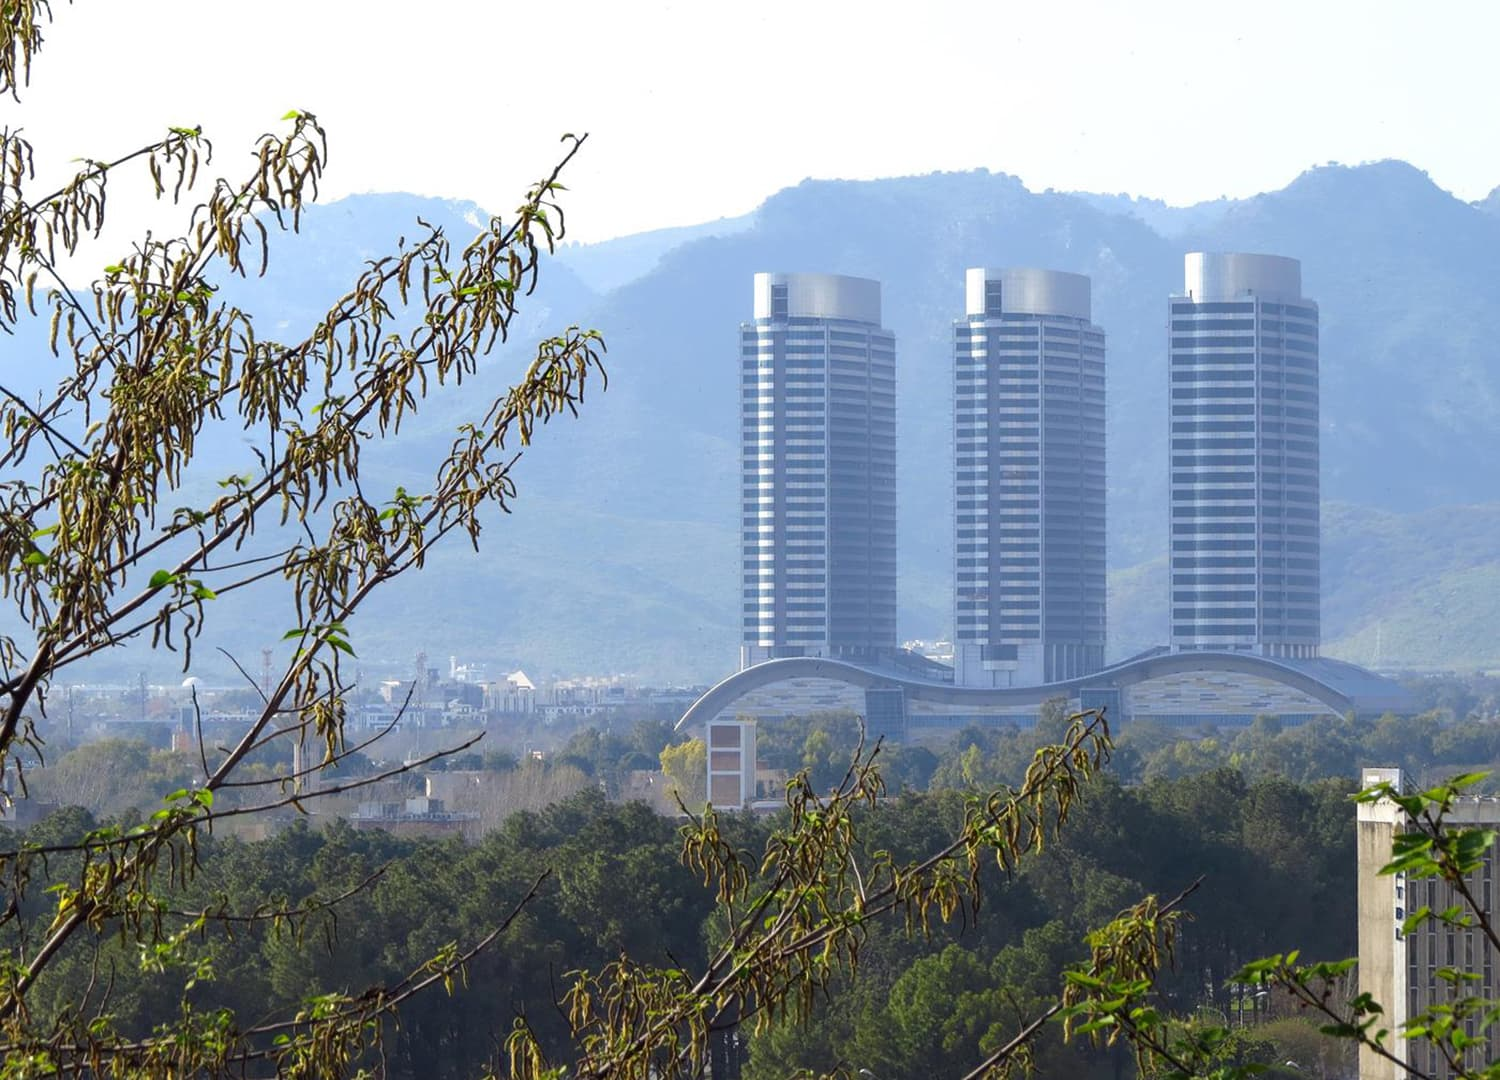 A view of The Centaurus, Islamabad.